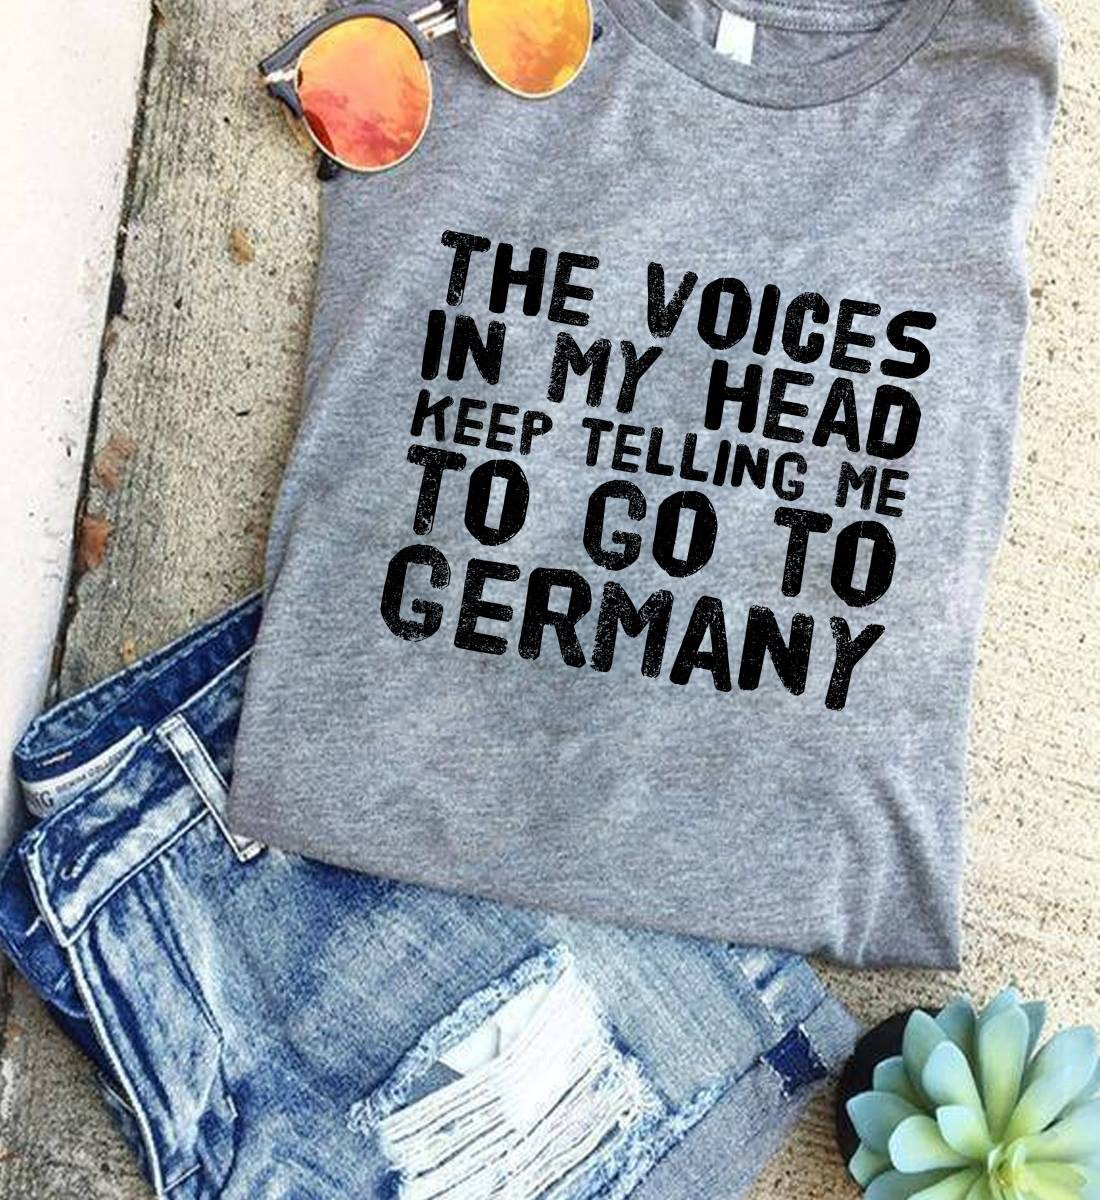 German Shirt The Voices In My Head Tell Me Go To Germany